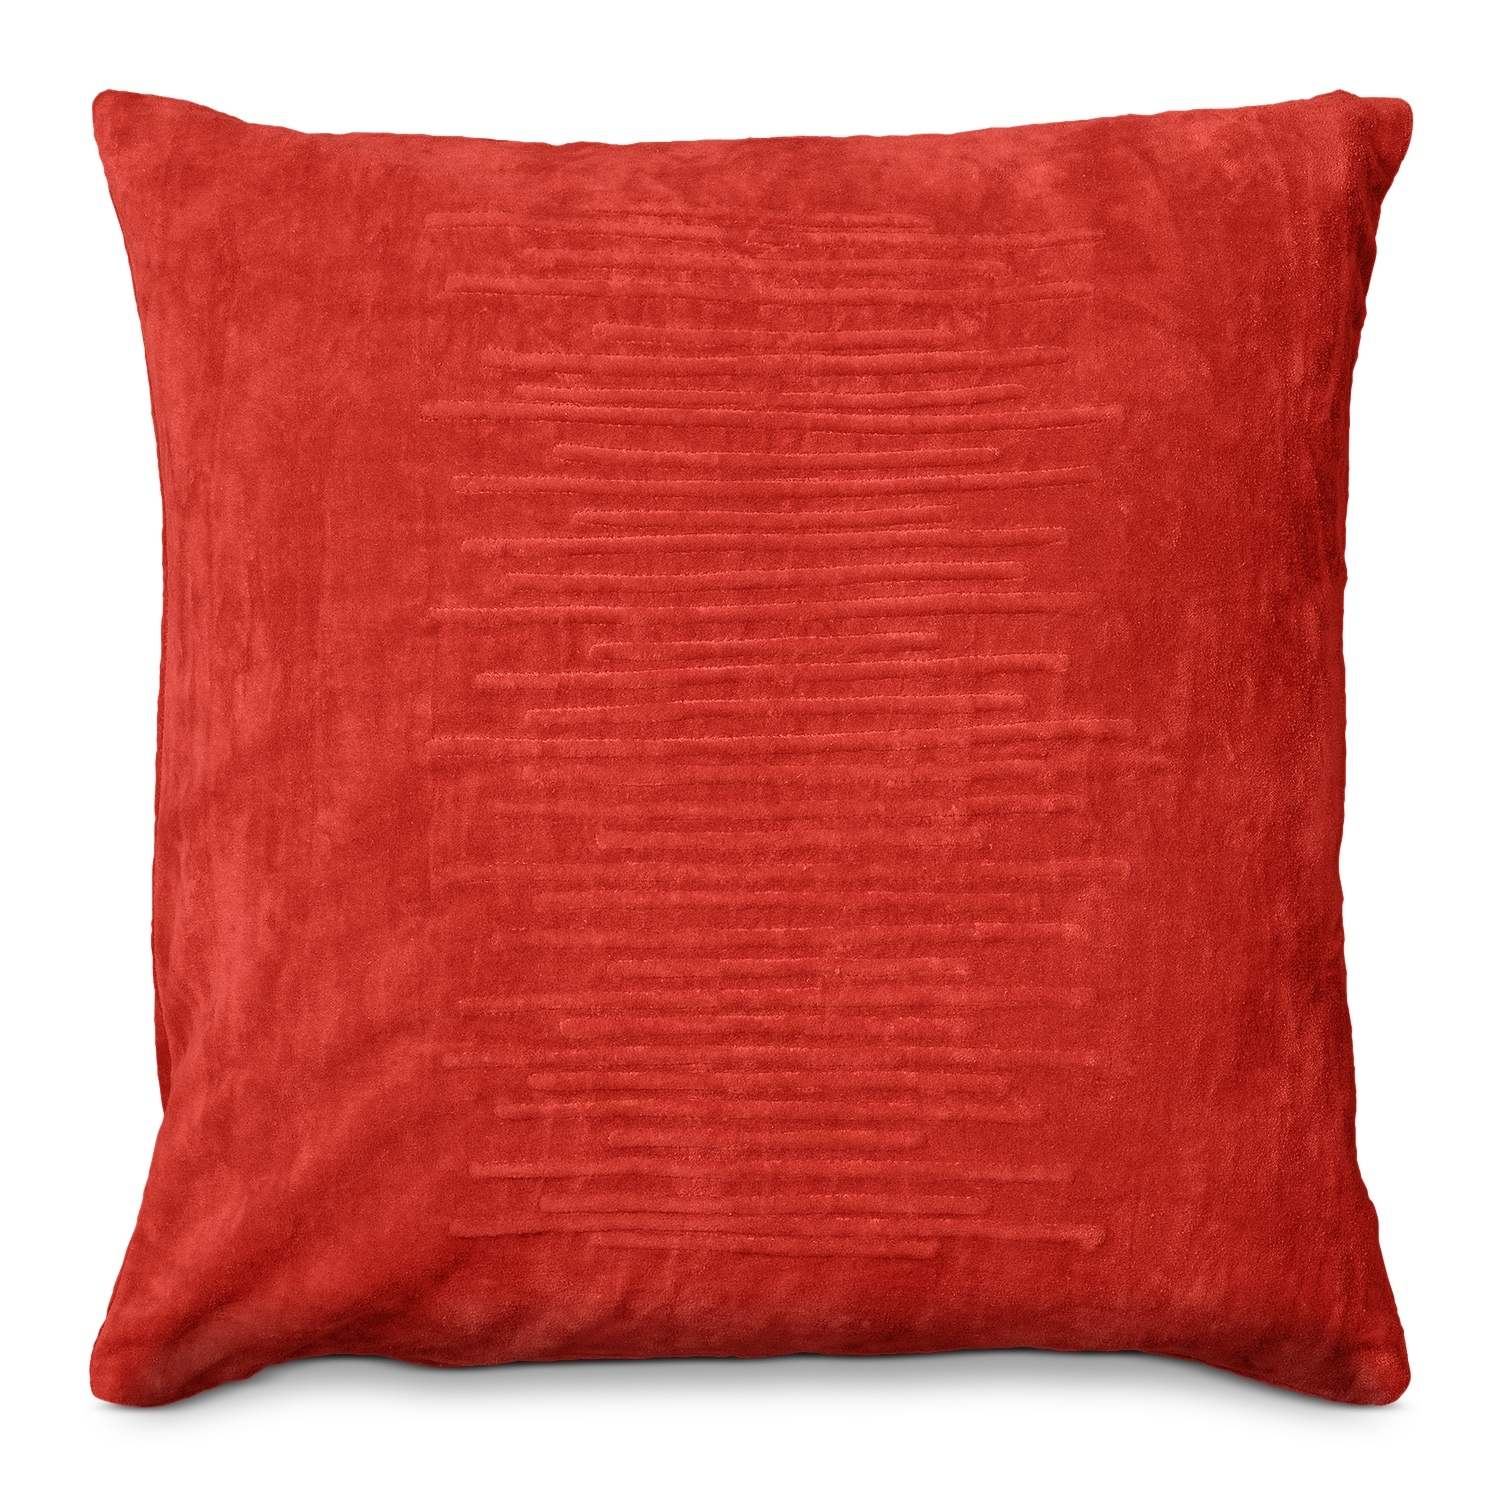 Camila Decorative Pillow